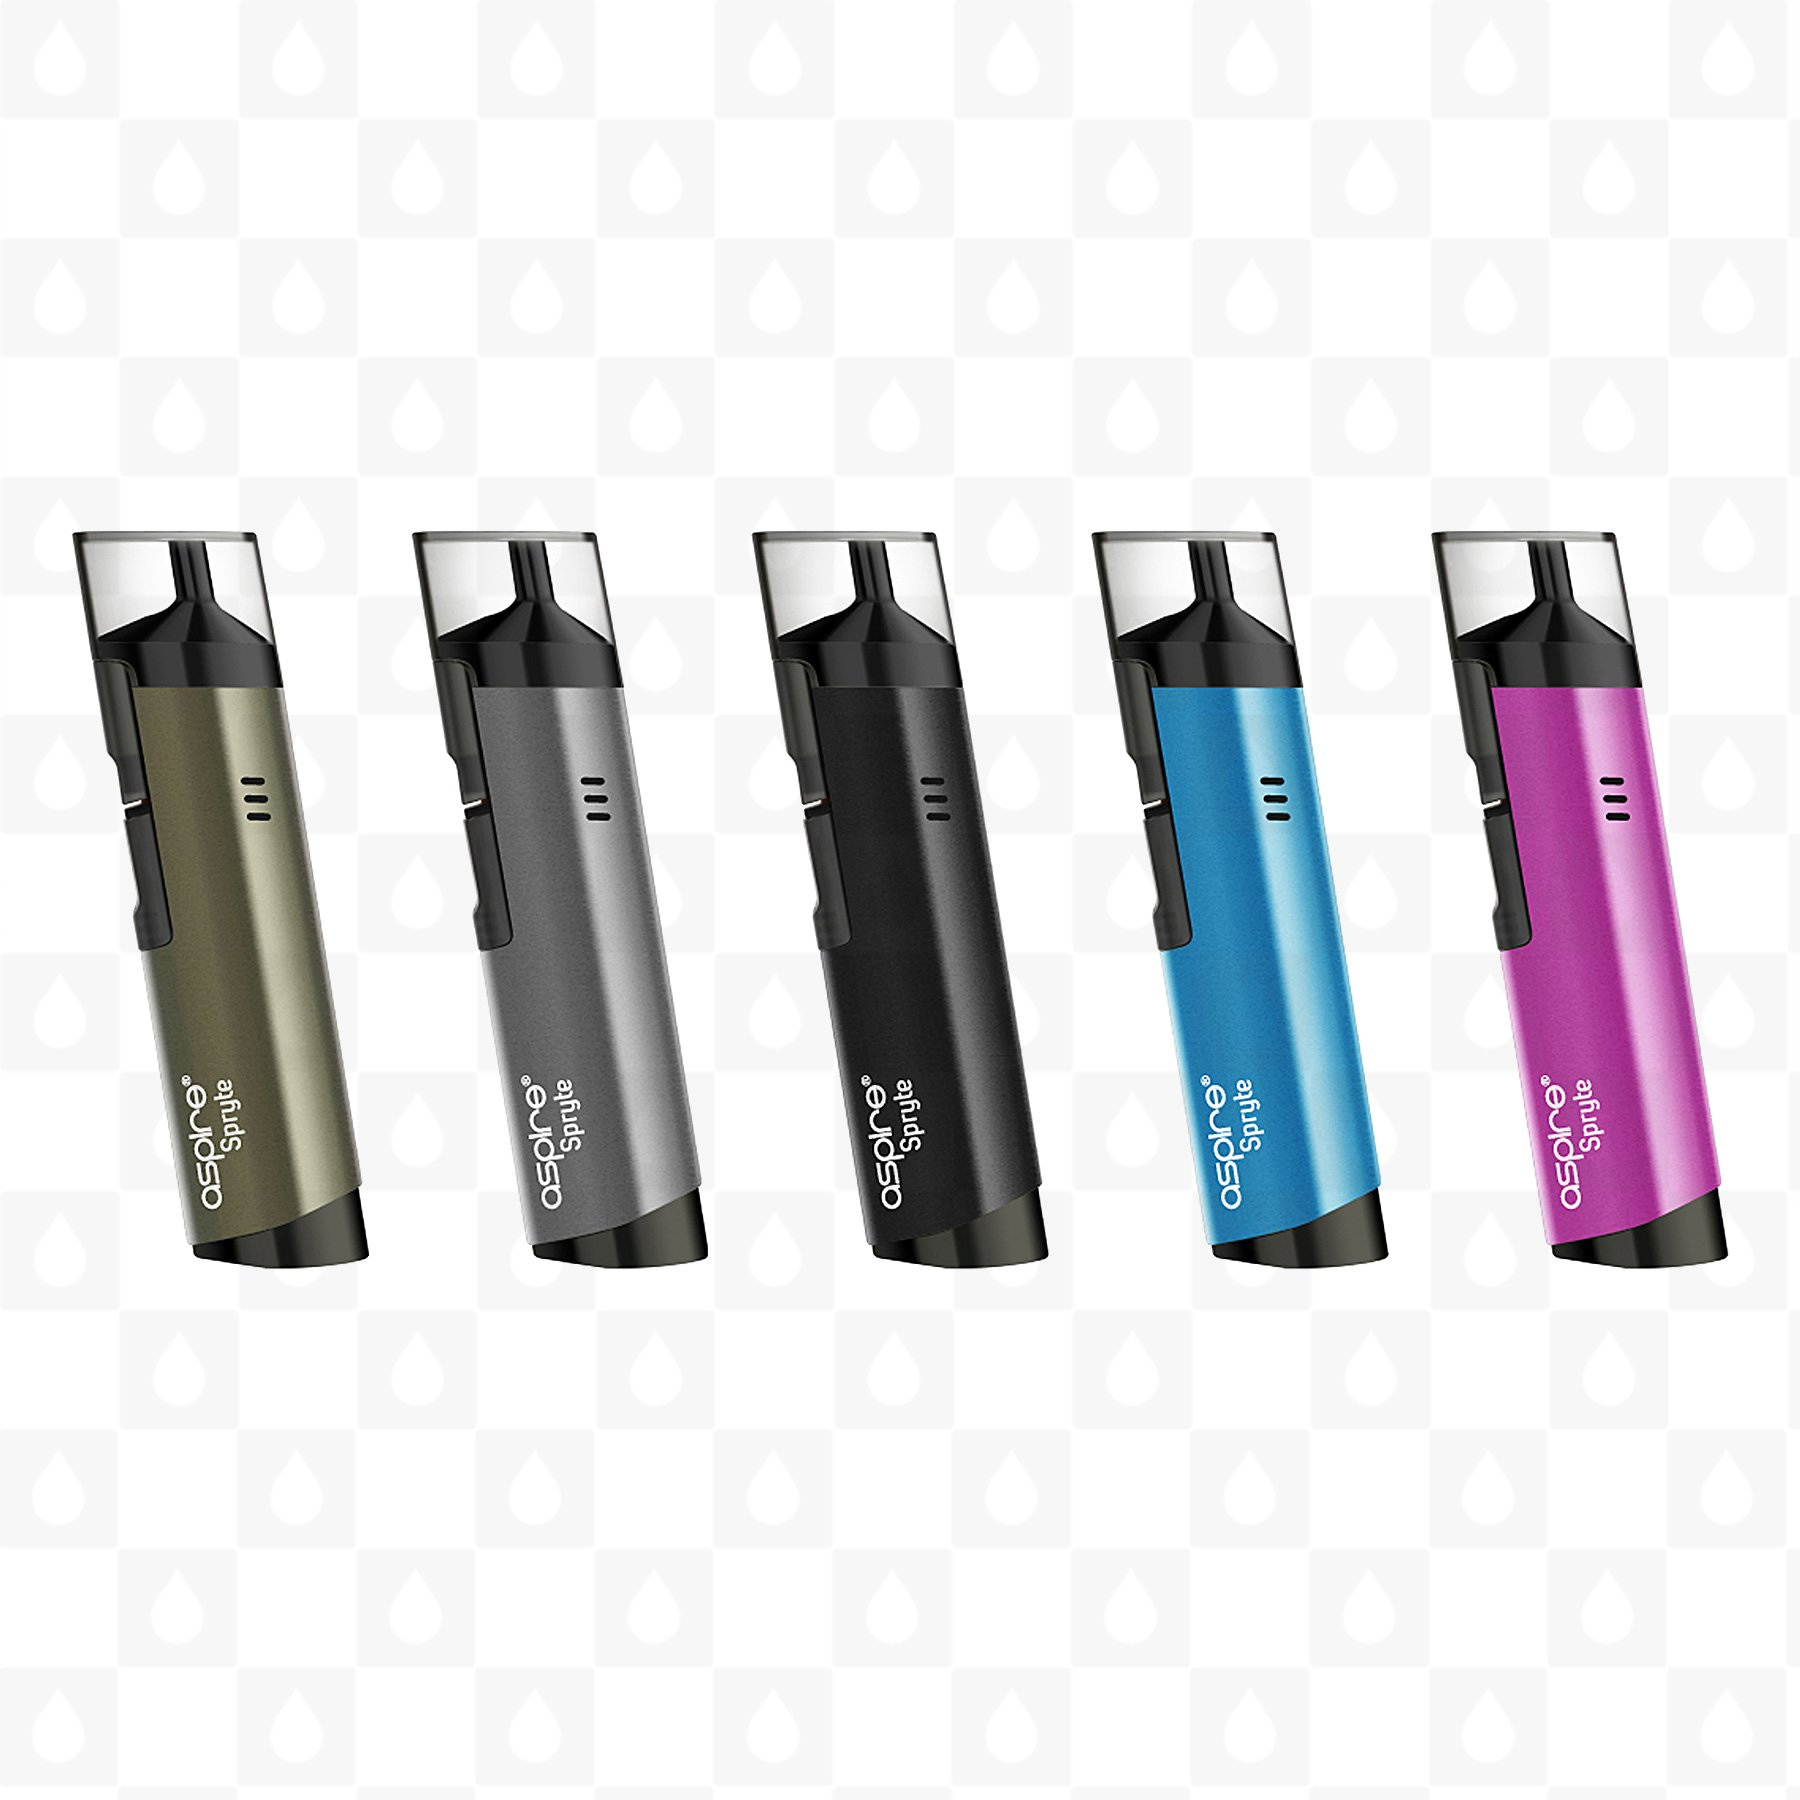 Aspire Spryte Pod Kit – £12.49